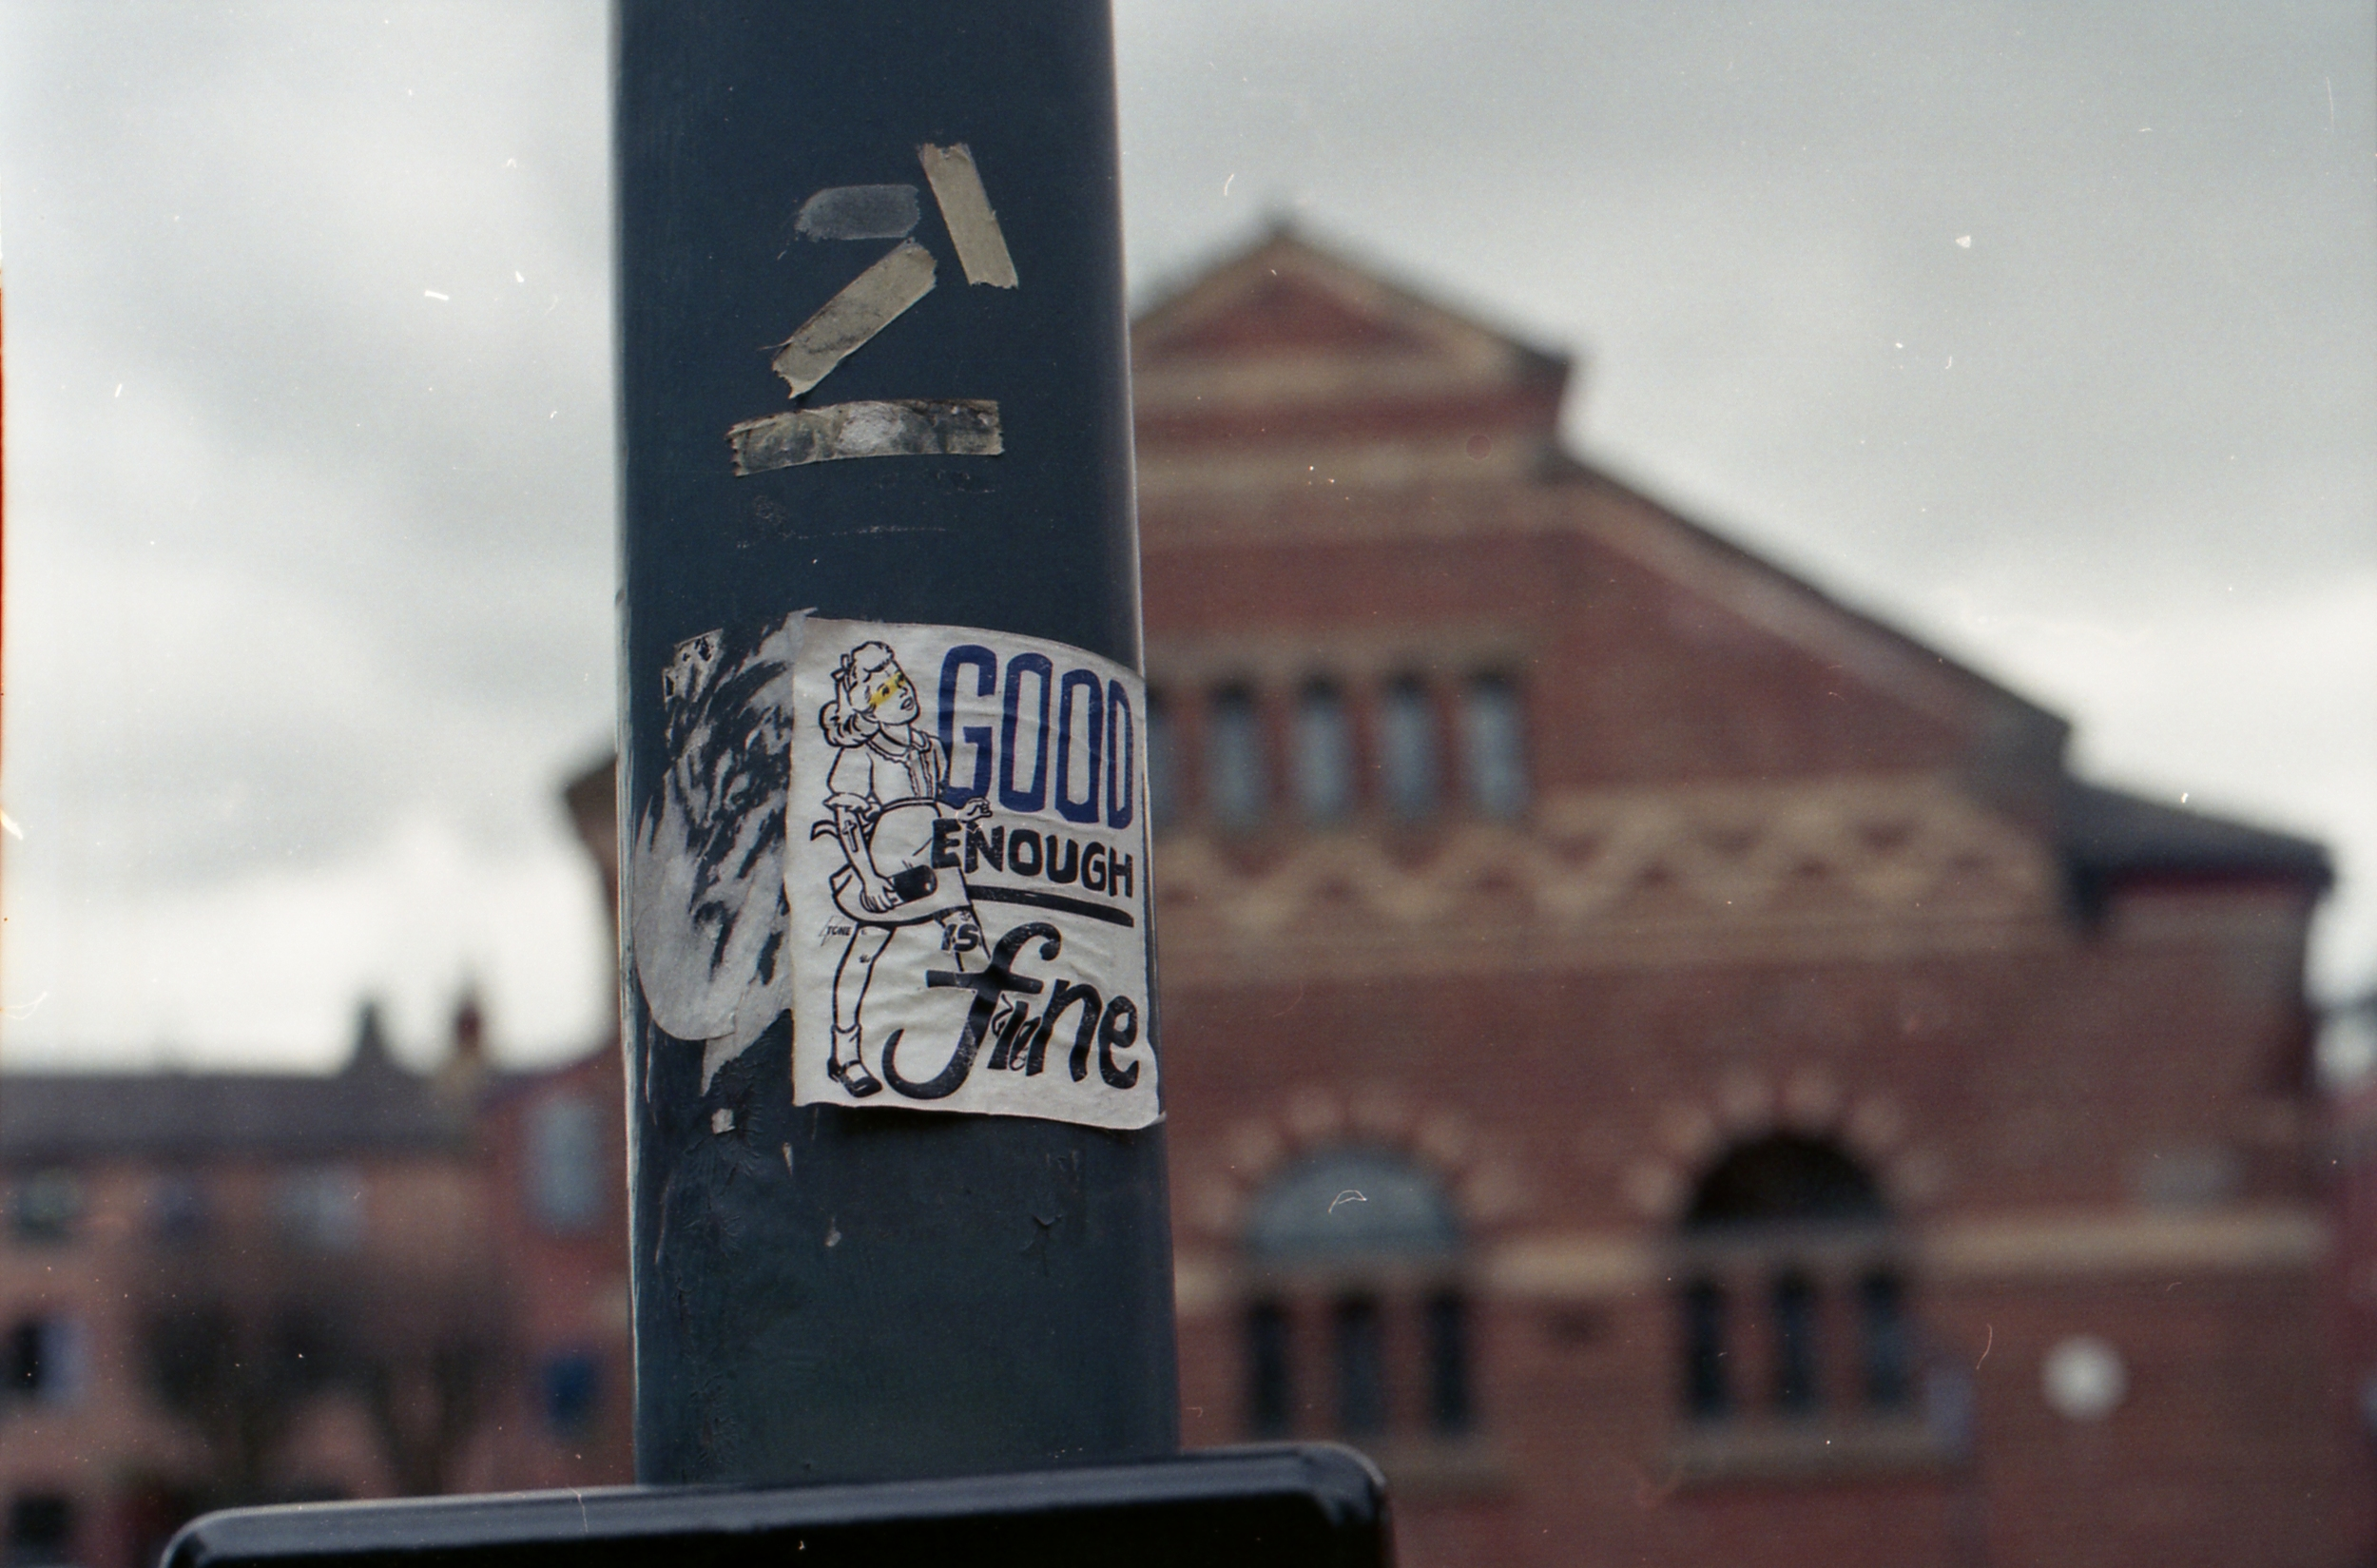 63/366 - Good enough is fine.